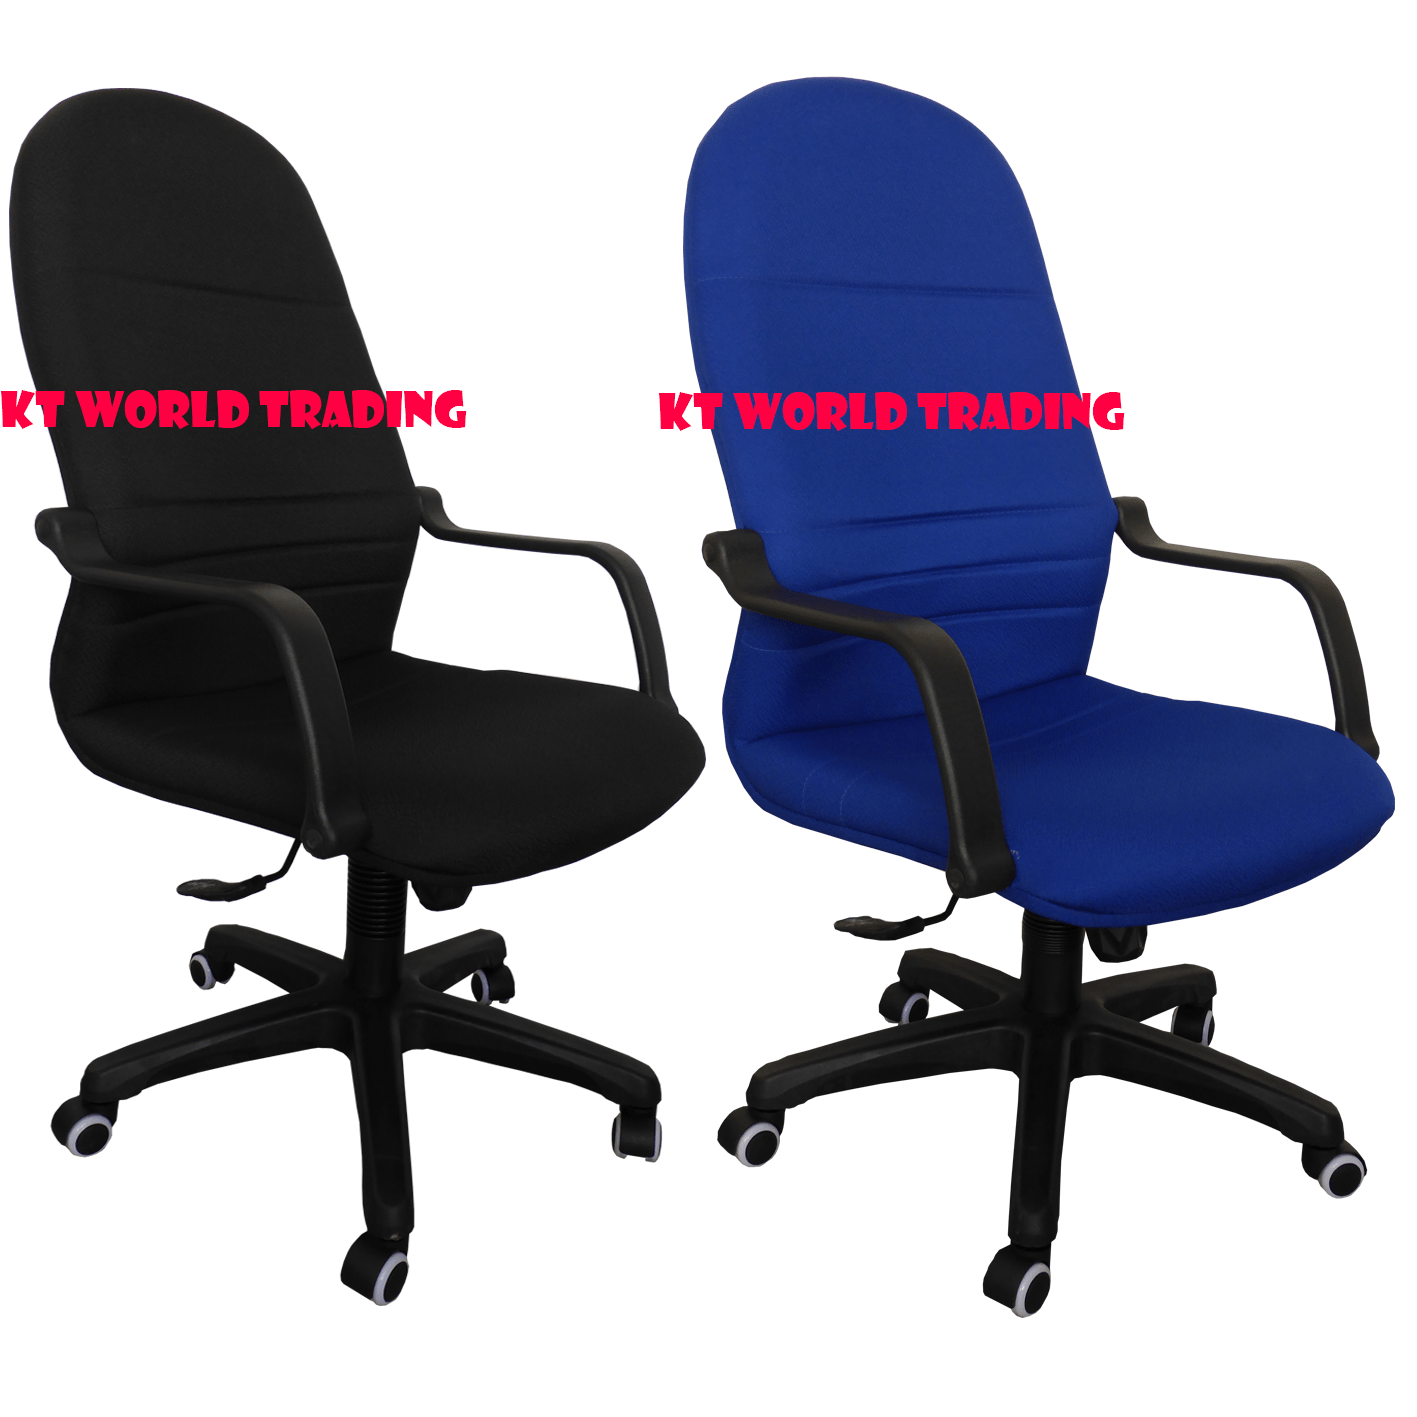 office chair malaysia ergonomic for home furniture budget selangor